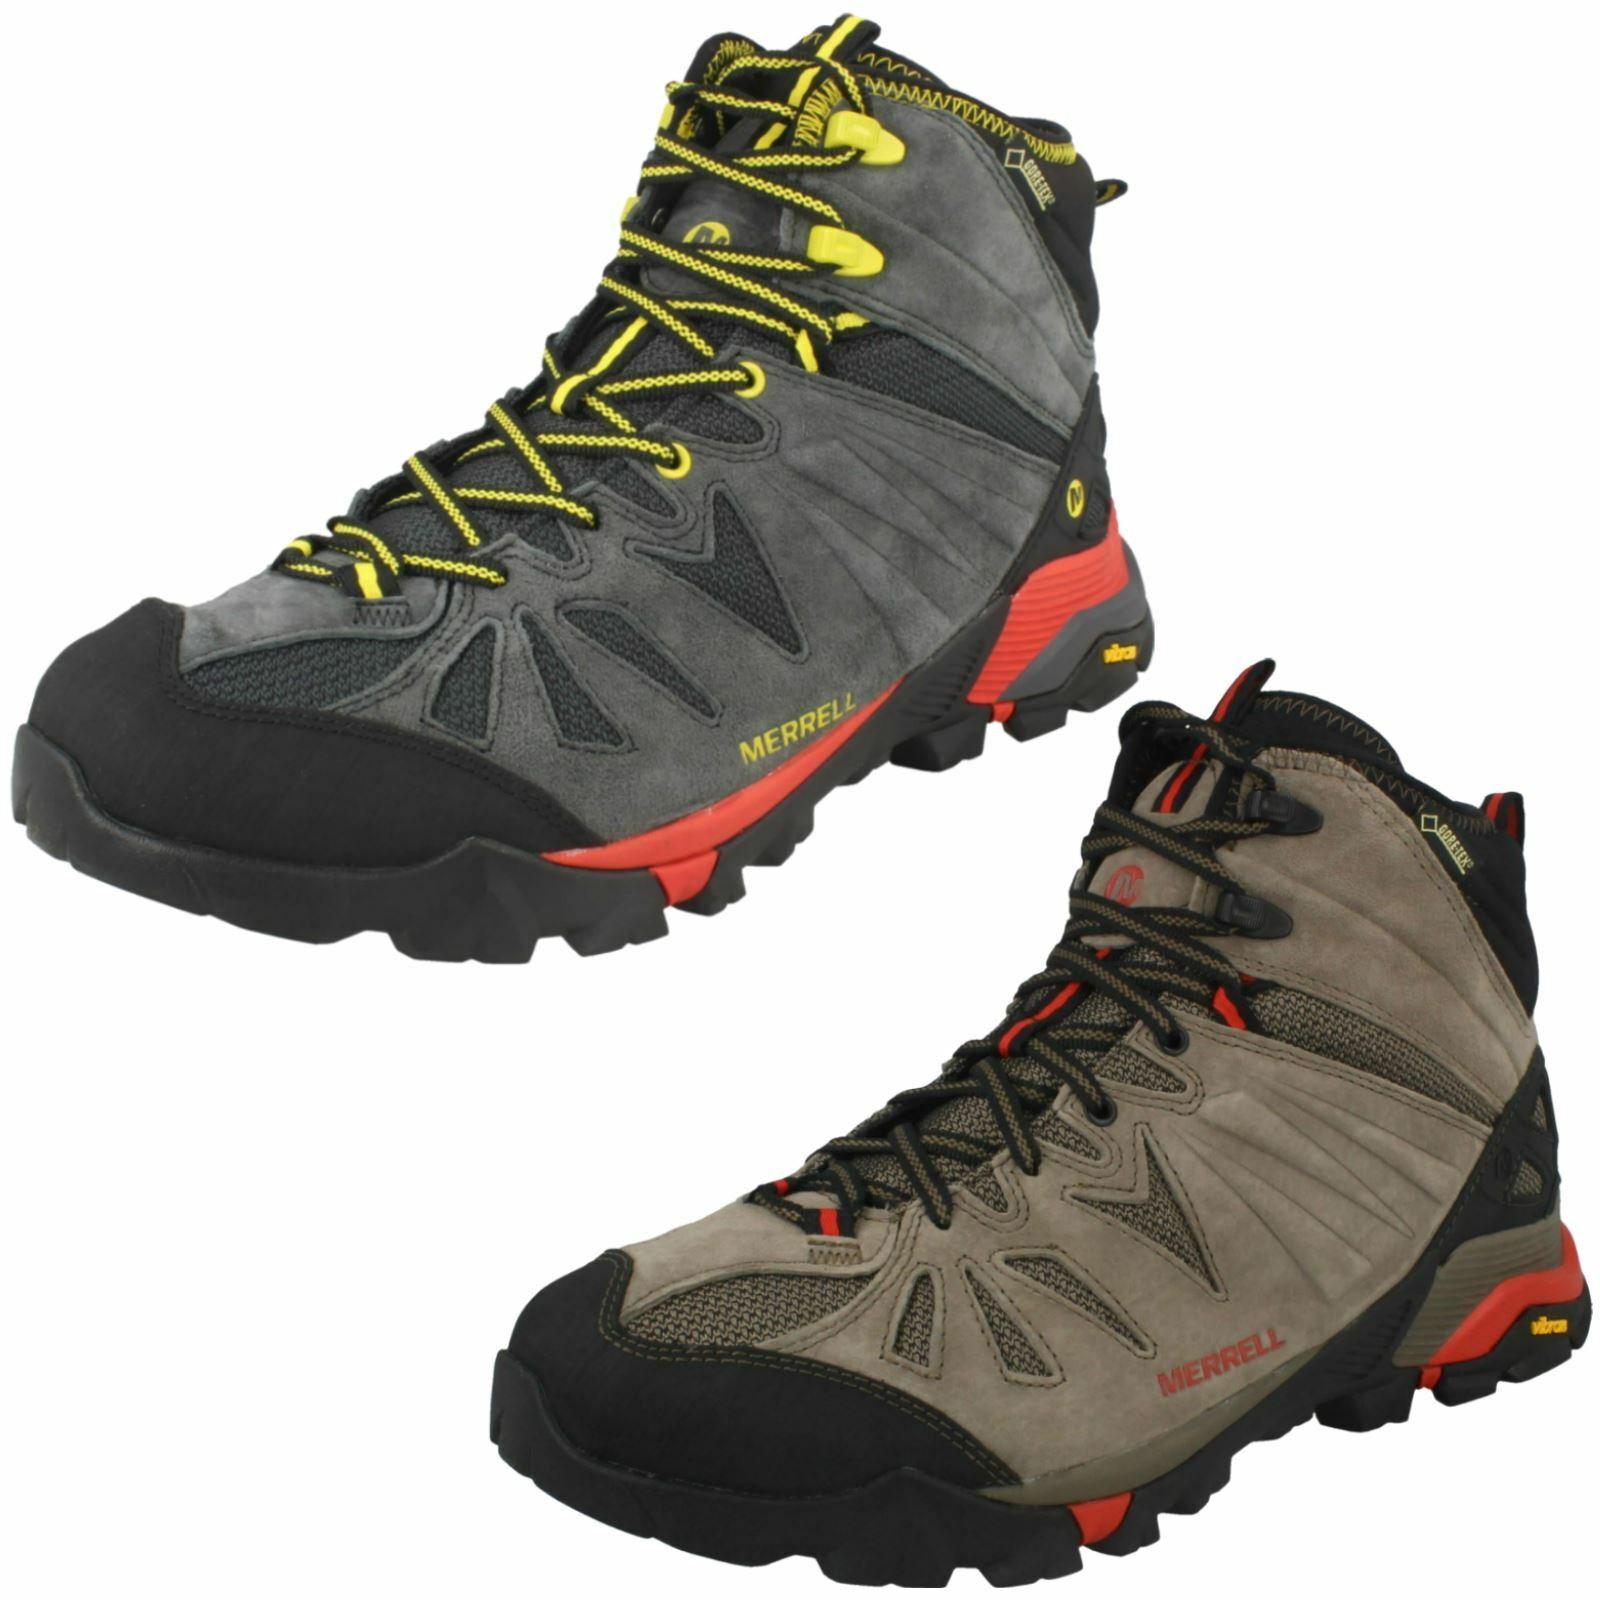 Mens Capra Mid Gore-Tex Leather Boots By Merrell Retail Price